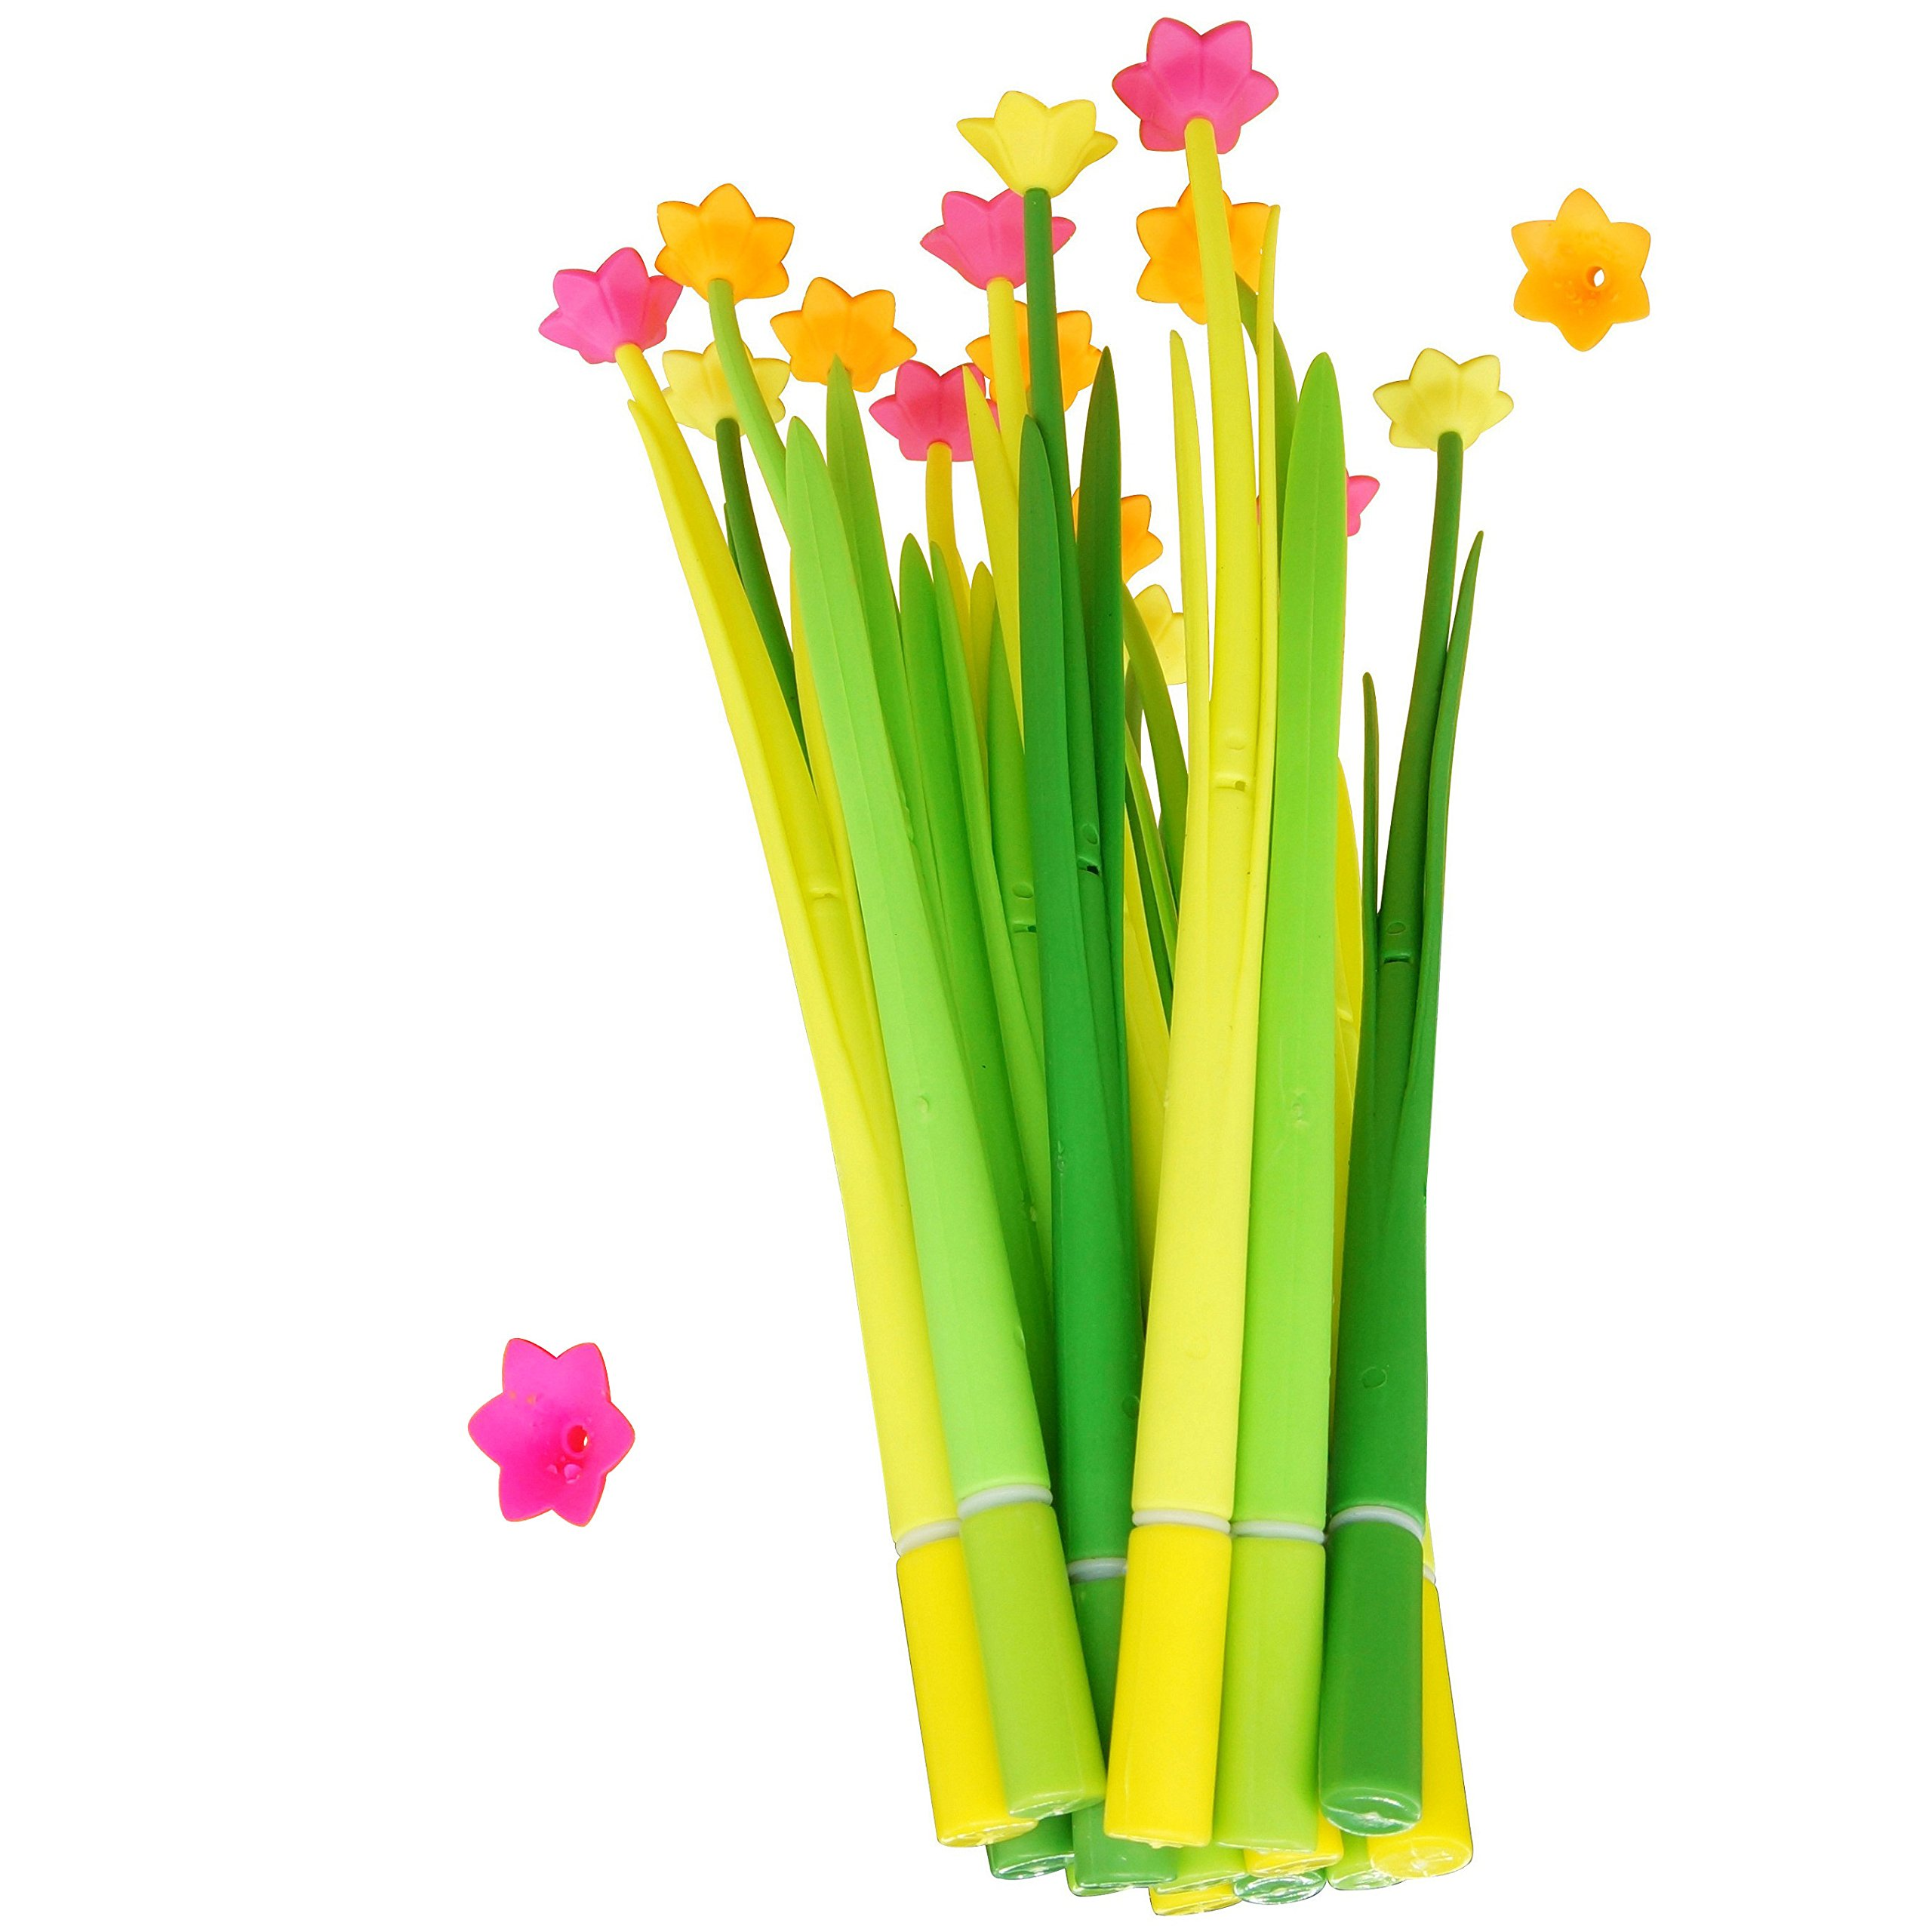 BUOP Narcissus Flower Style Ball-Point Pens, Extra Fine Black Gel Ink Pens, Assorted Color Flower Pens, Creative Stationery Gift, Dozen (12pcs) Box